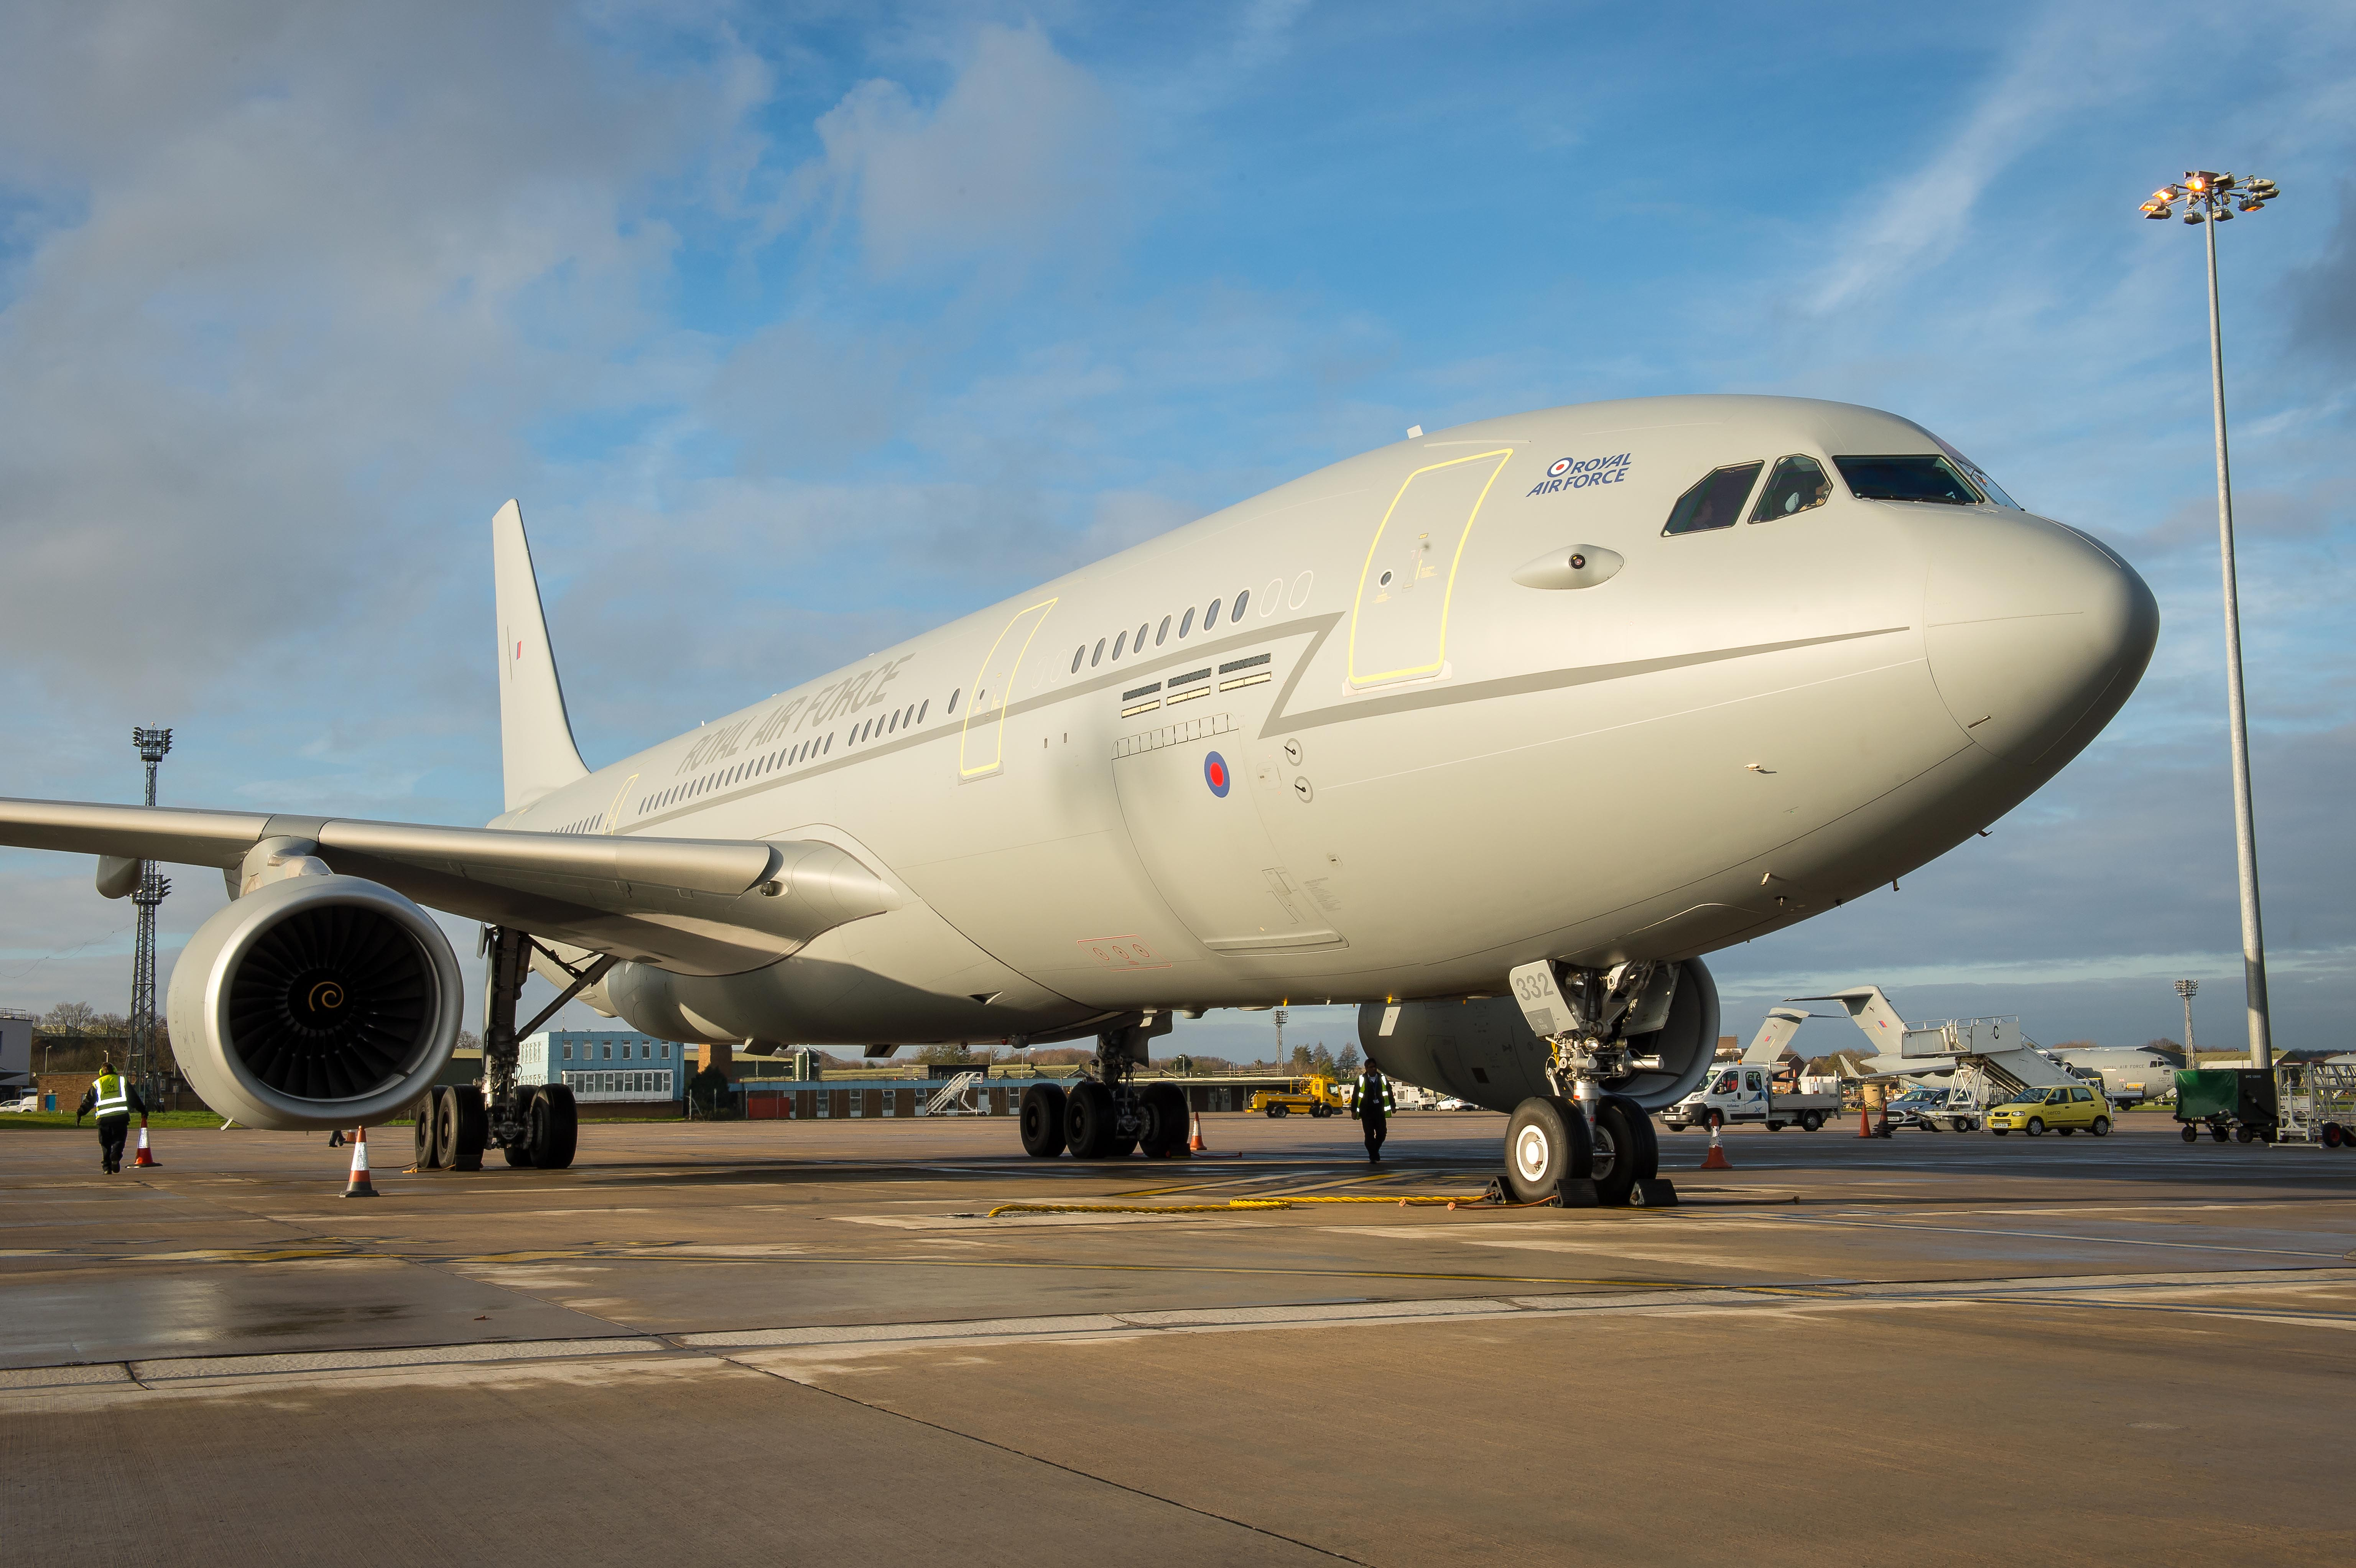 File Raf Voyager Aircraft Mod 45156495 Jpg Wikimedia Commons